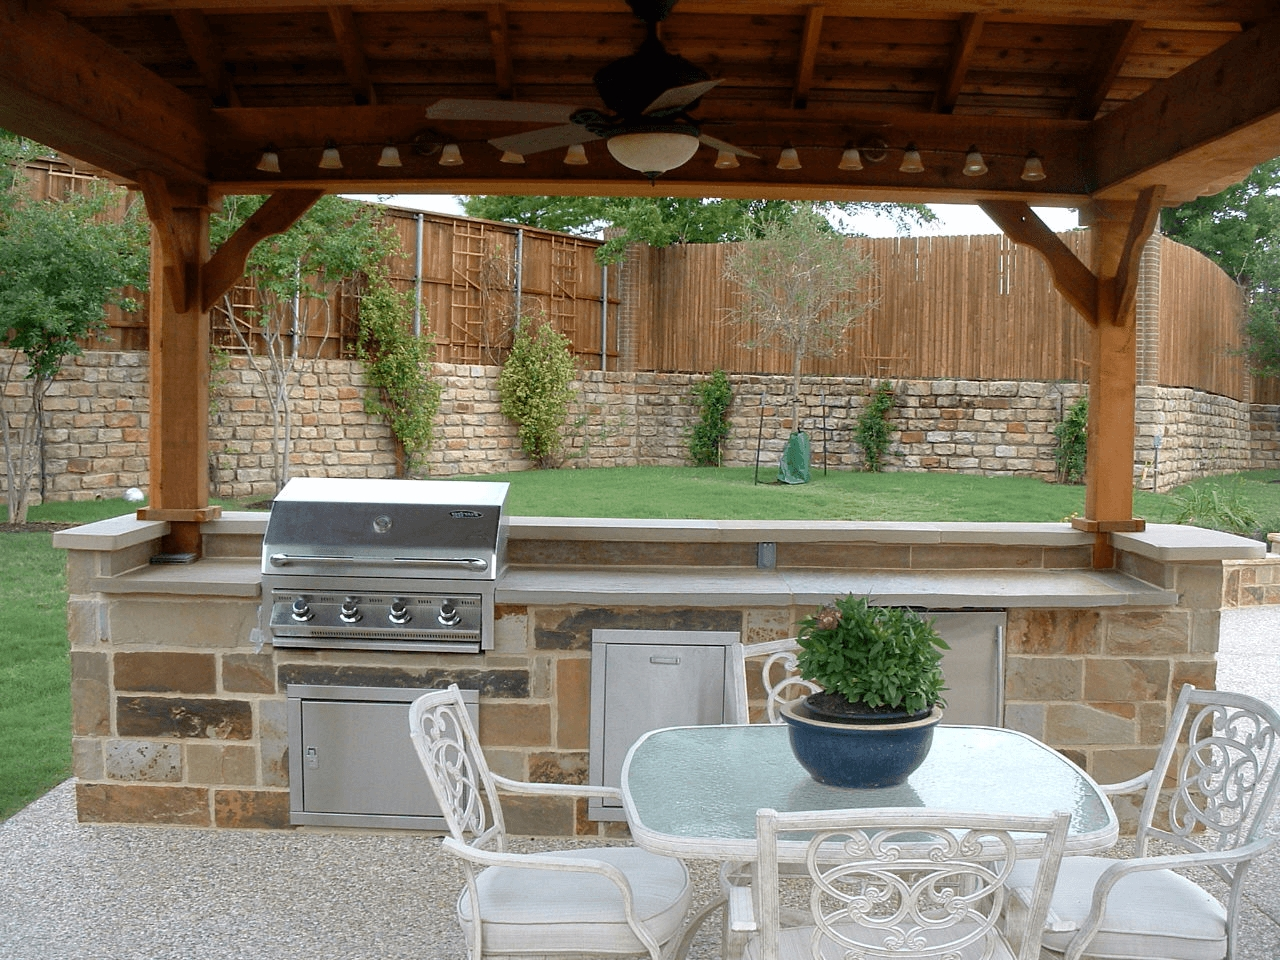 Recent Outdoor Porch Ceiling Fans With Lights Regarding How To Install Outdoor Porch Ceiling Fans (View 7 of 20)